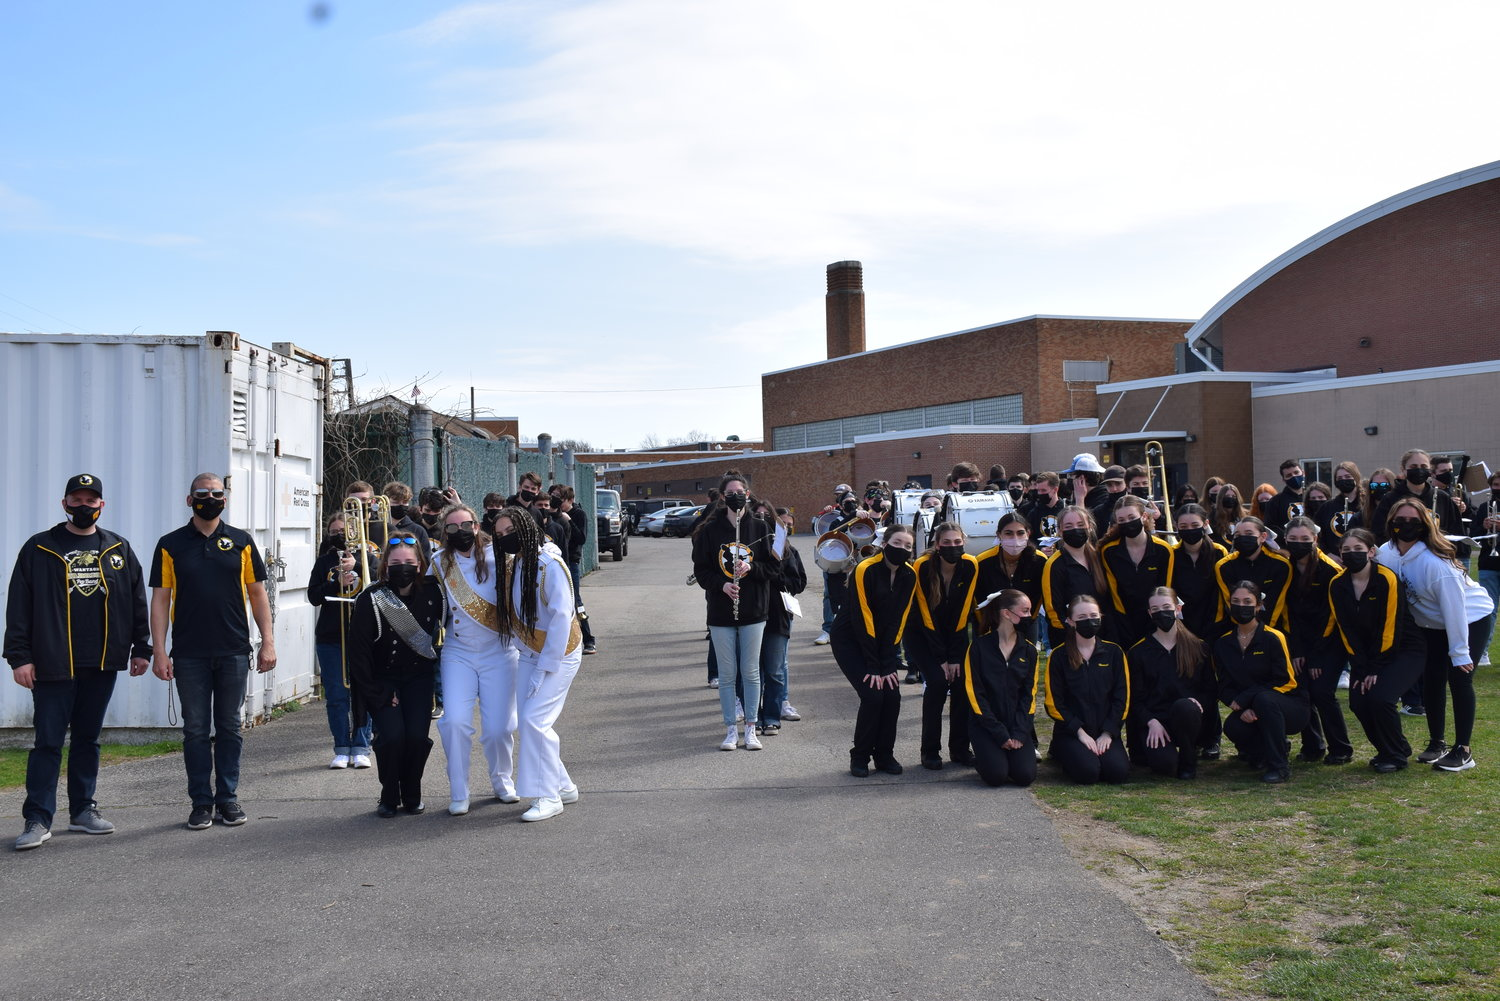 The Wantagh High School marching band and dance team posed for a quick photo prior to the halftime performance.